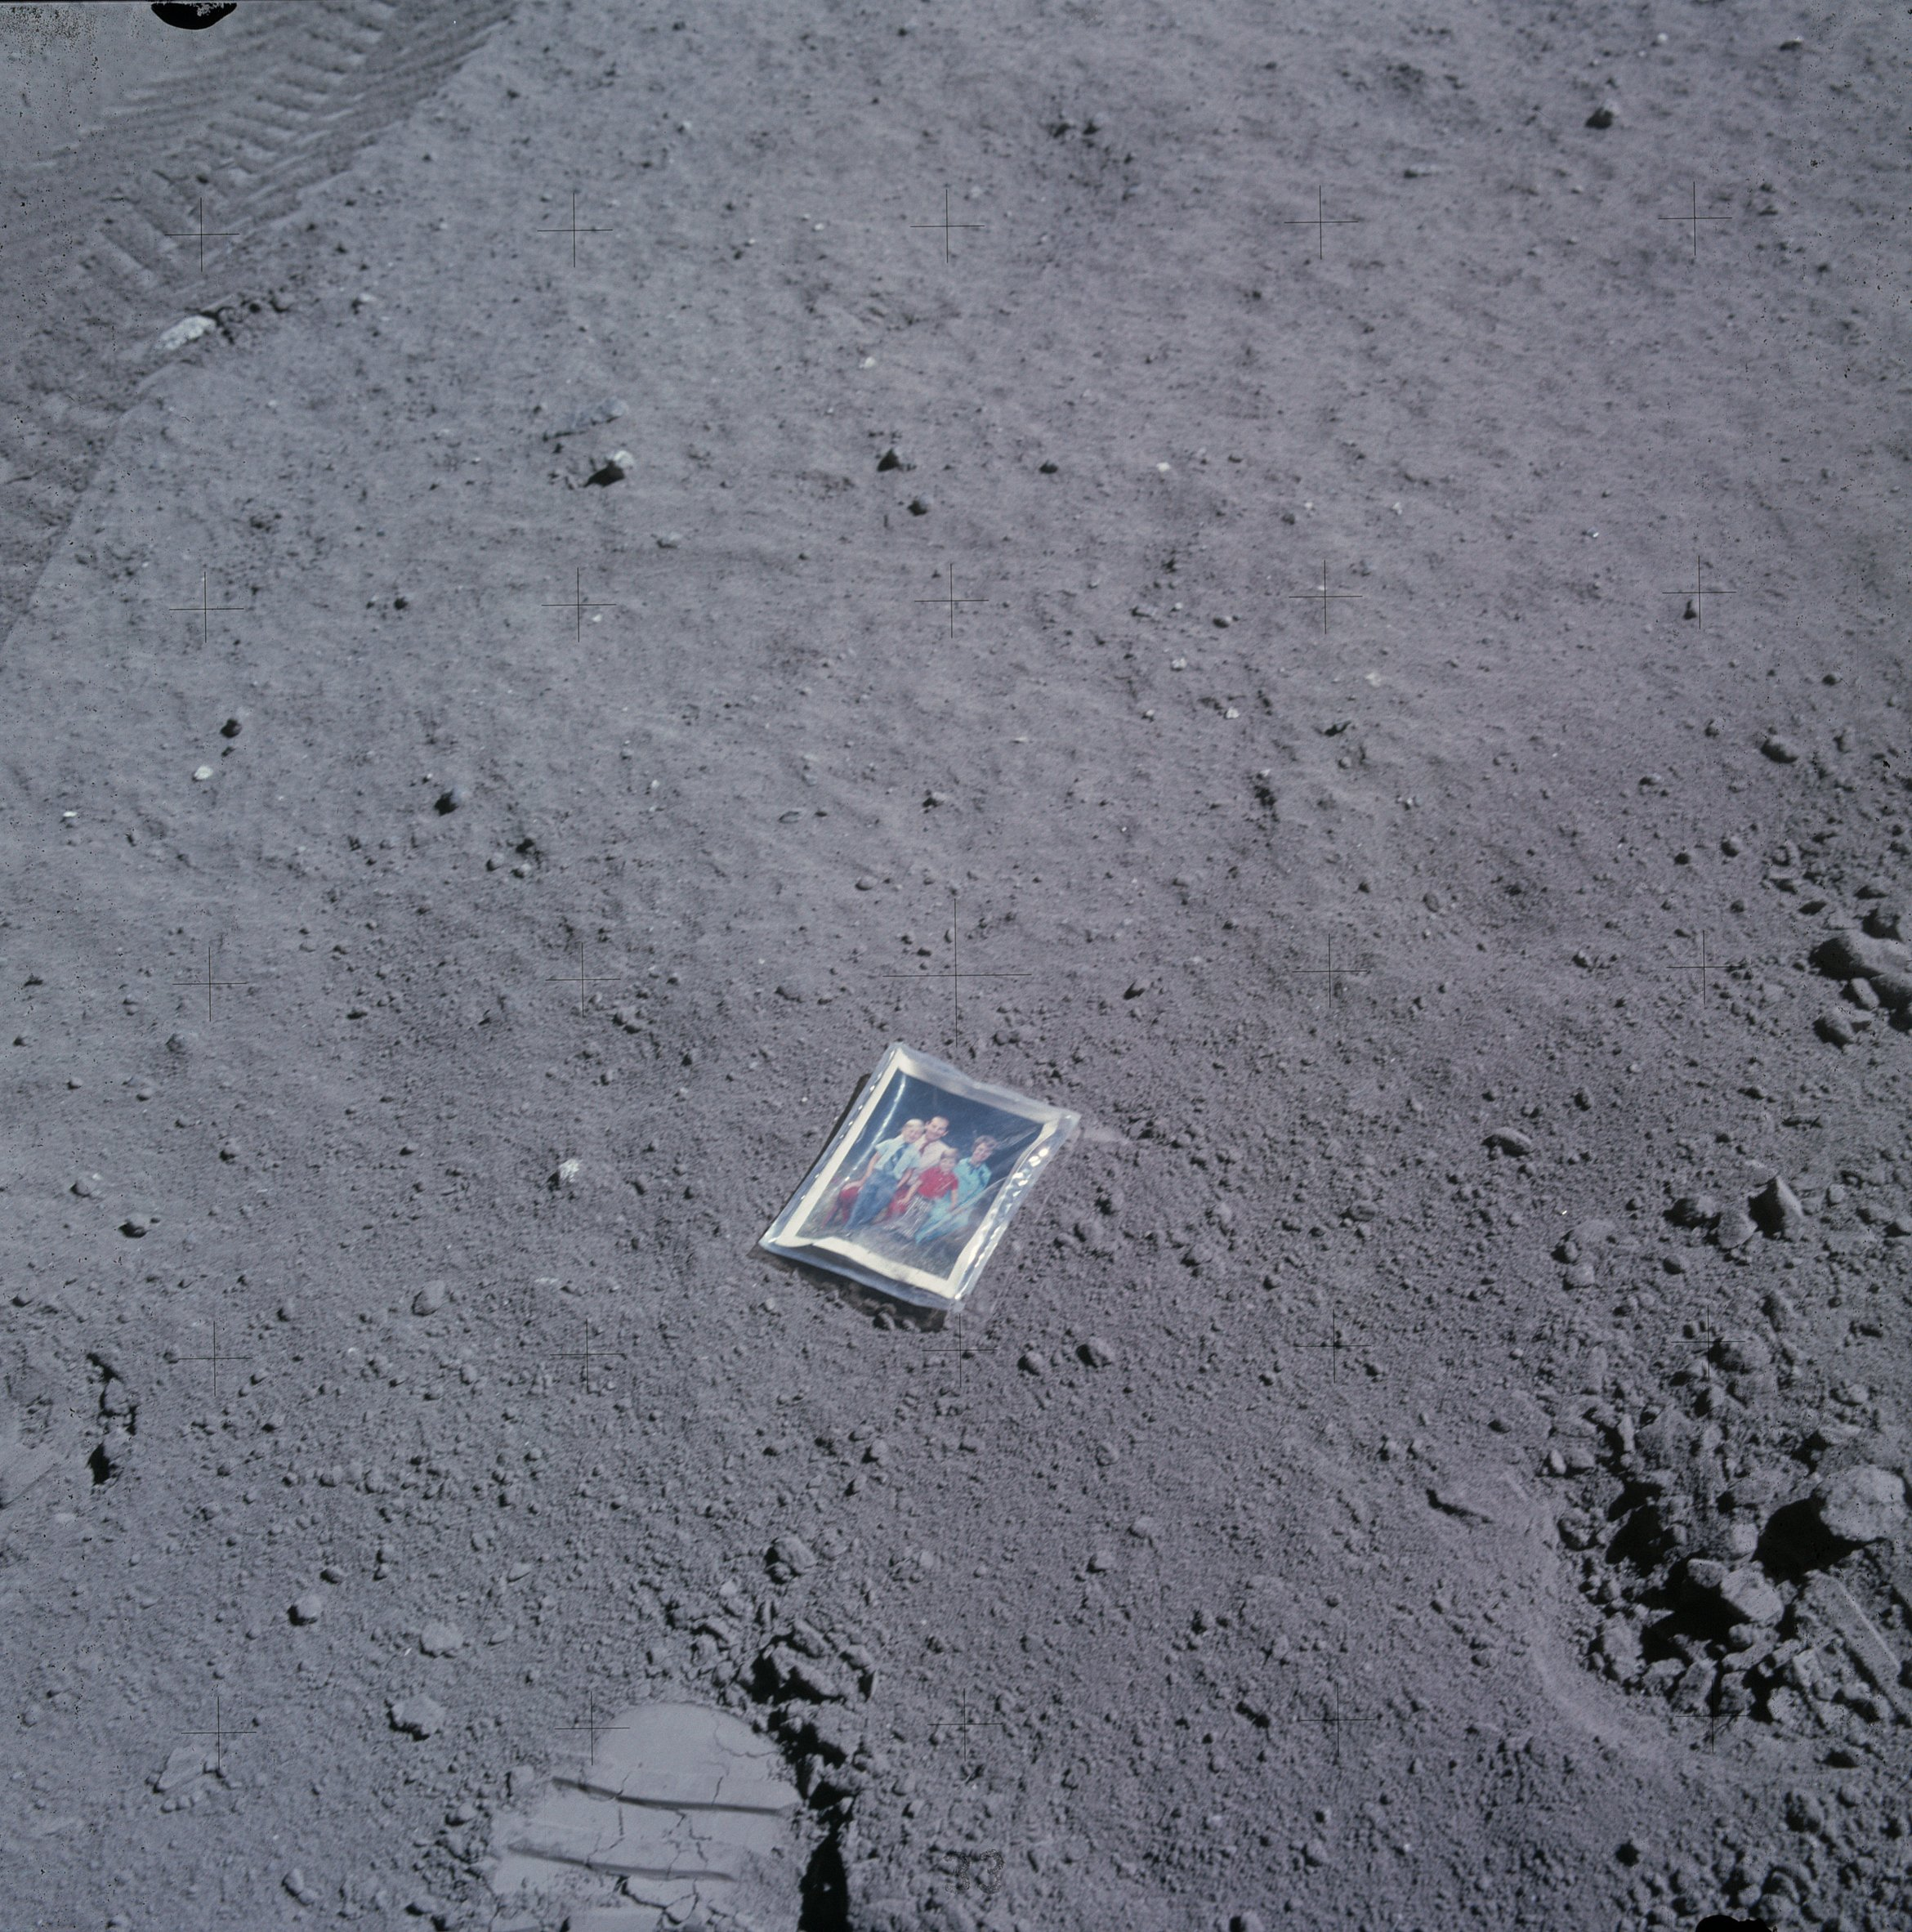 nasa apollo history - photo #29